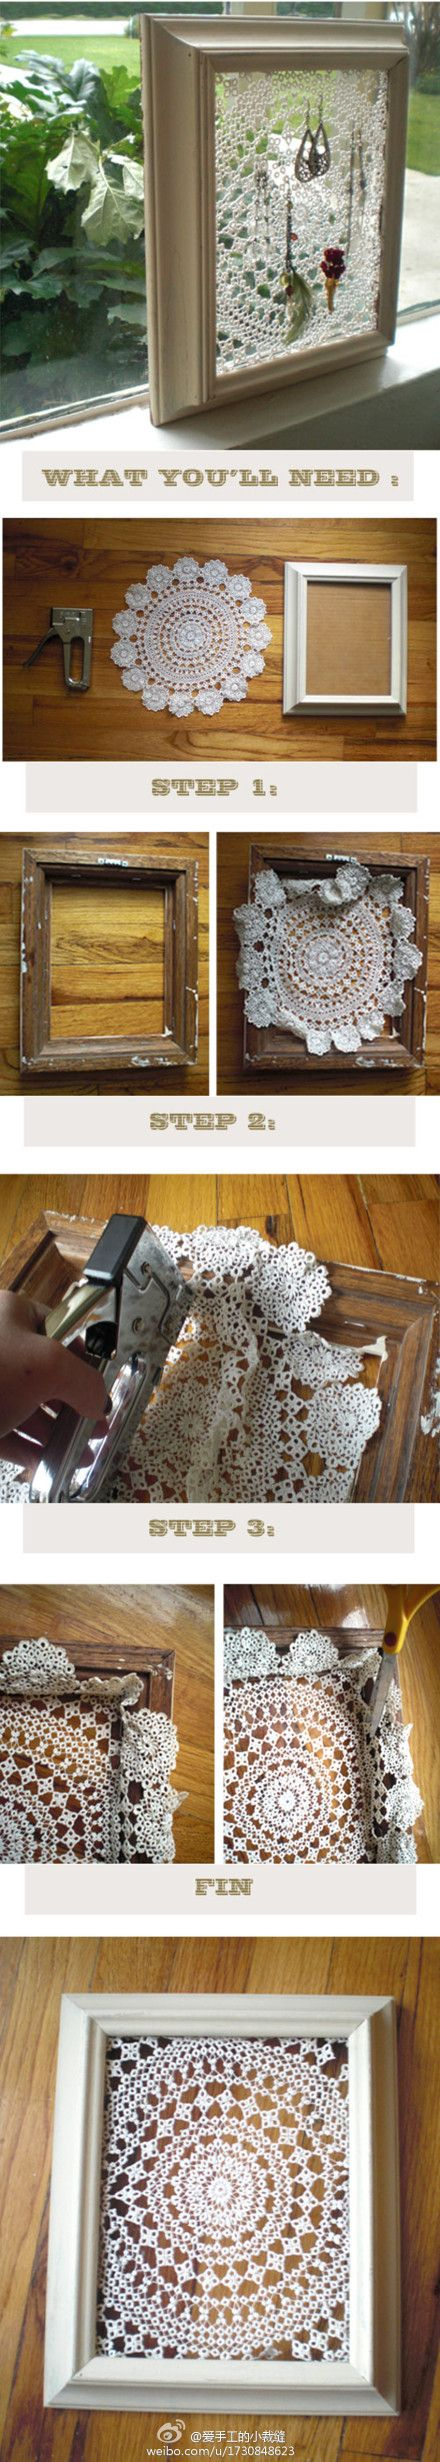 Ideas- Awesome Jewelry Holder from a Framed Doily!! Or you could just hang it up as art in your home- in which case you'd definitely want to back it & use glass on the front!!